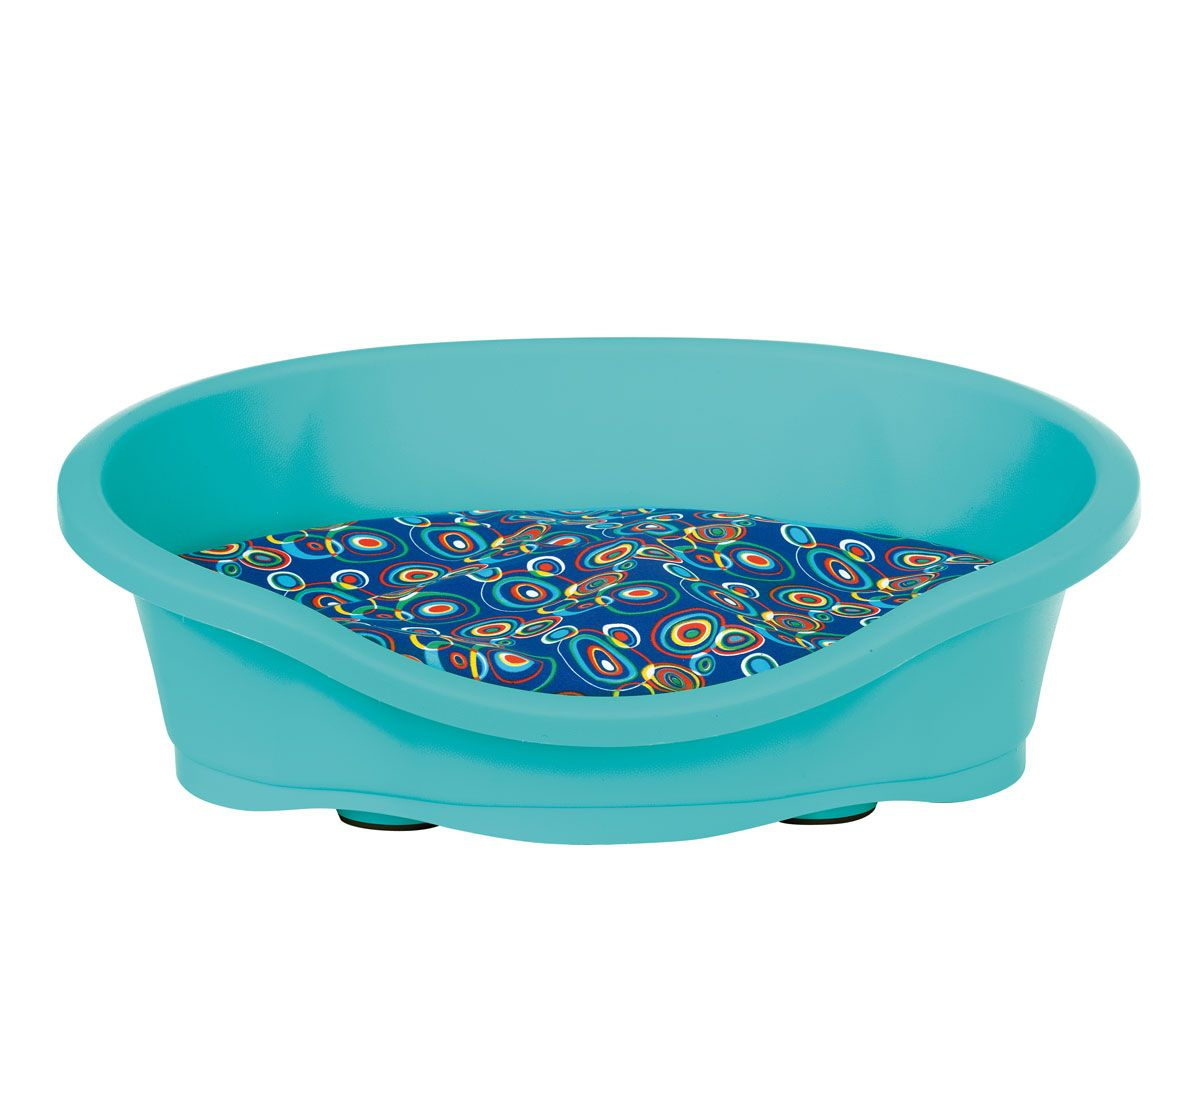 IMAC Dido 50 Tub With Cushion For Dog & Cat - Turquoise - (LxWxH ...